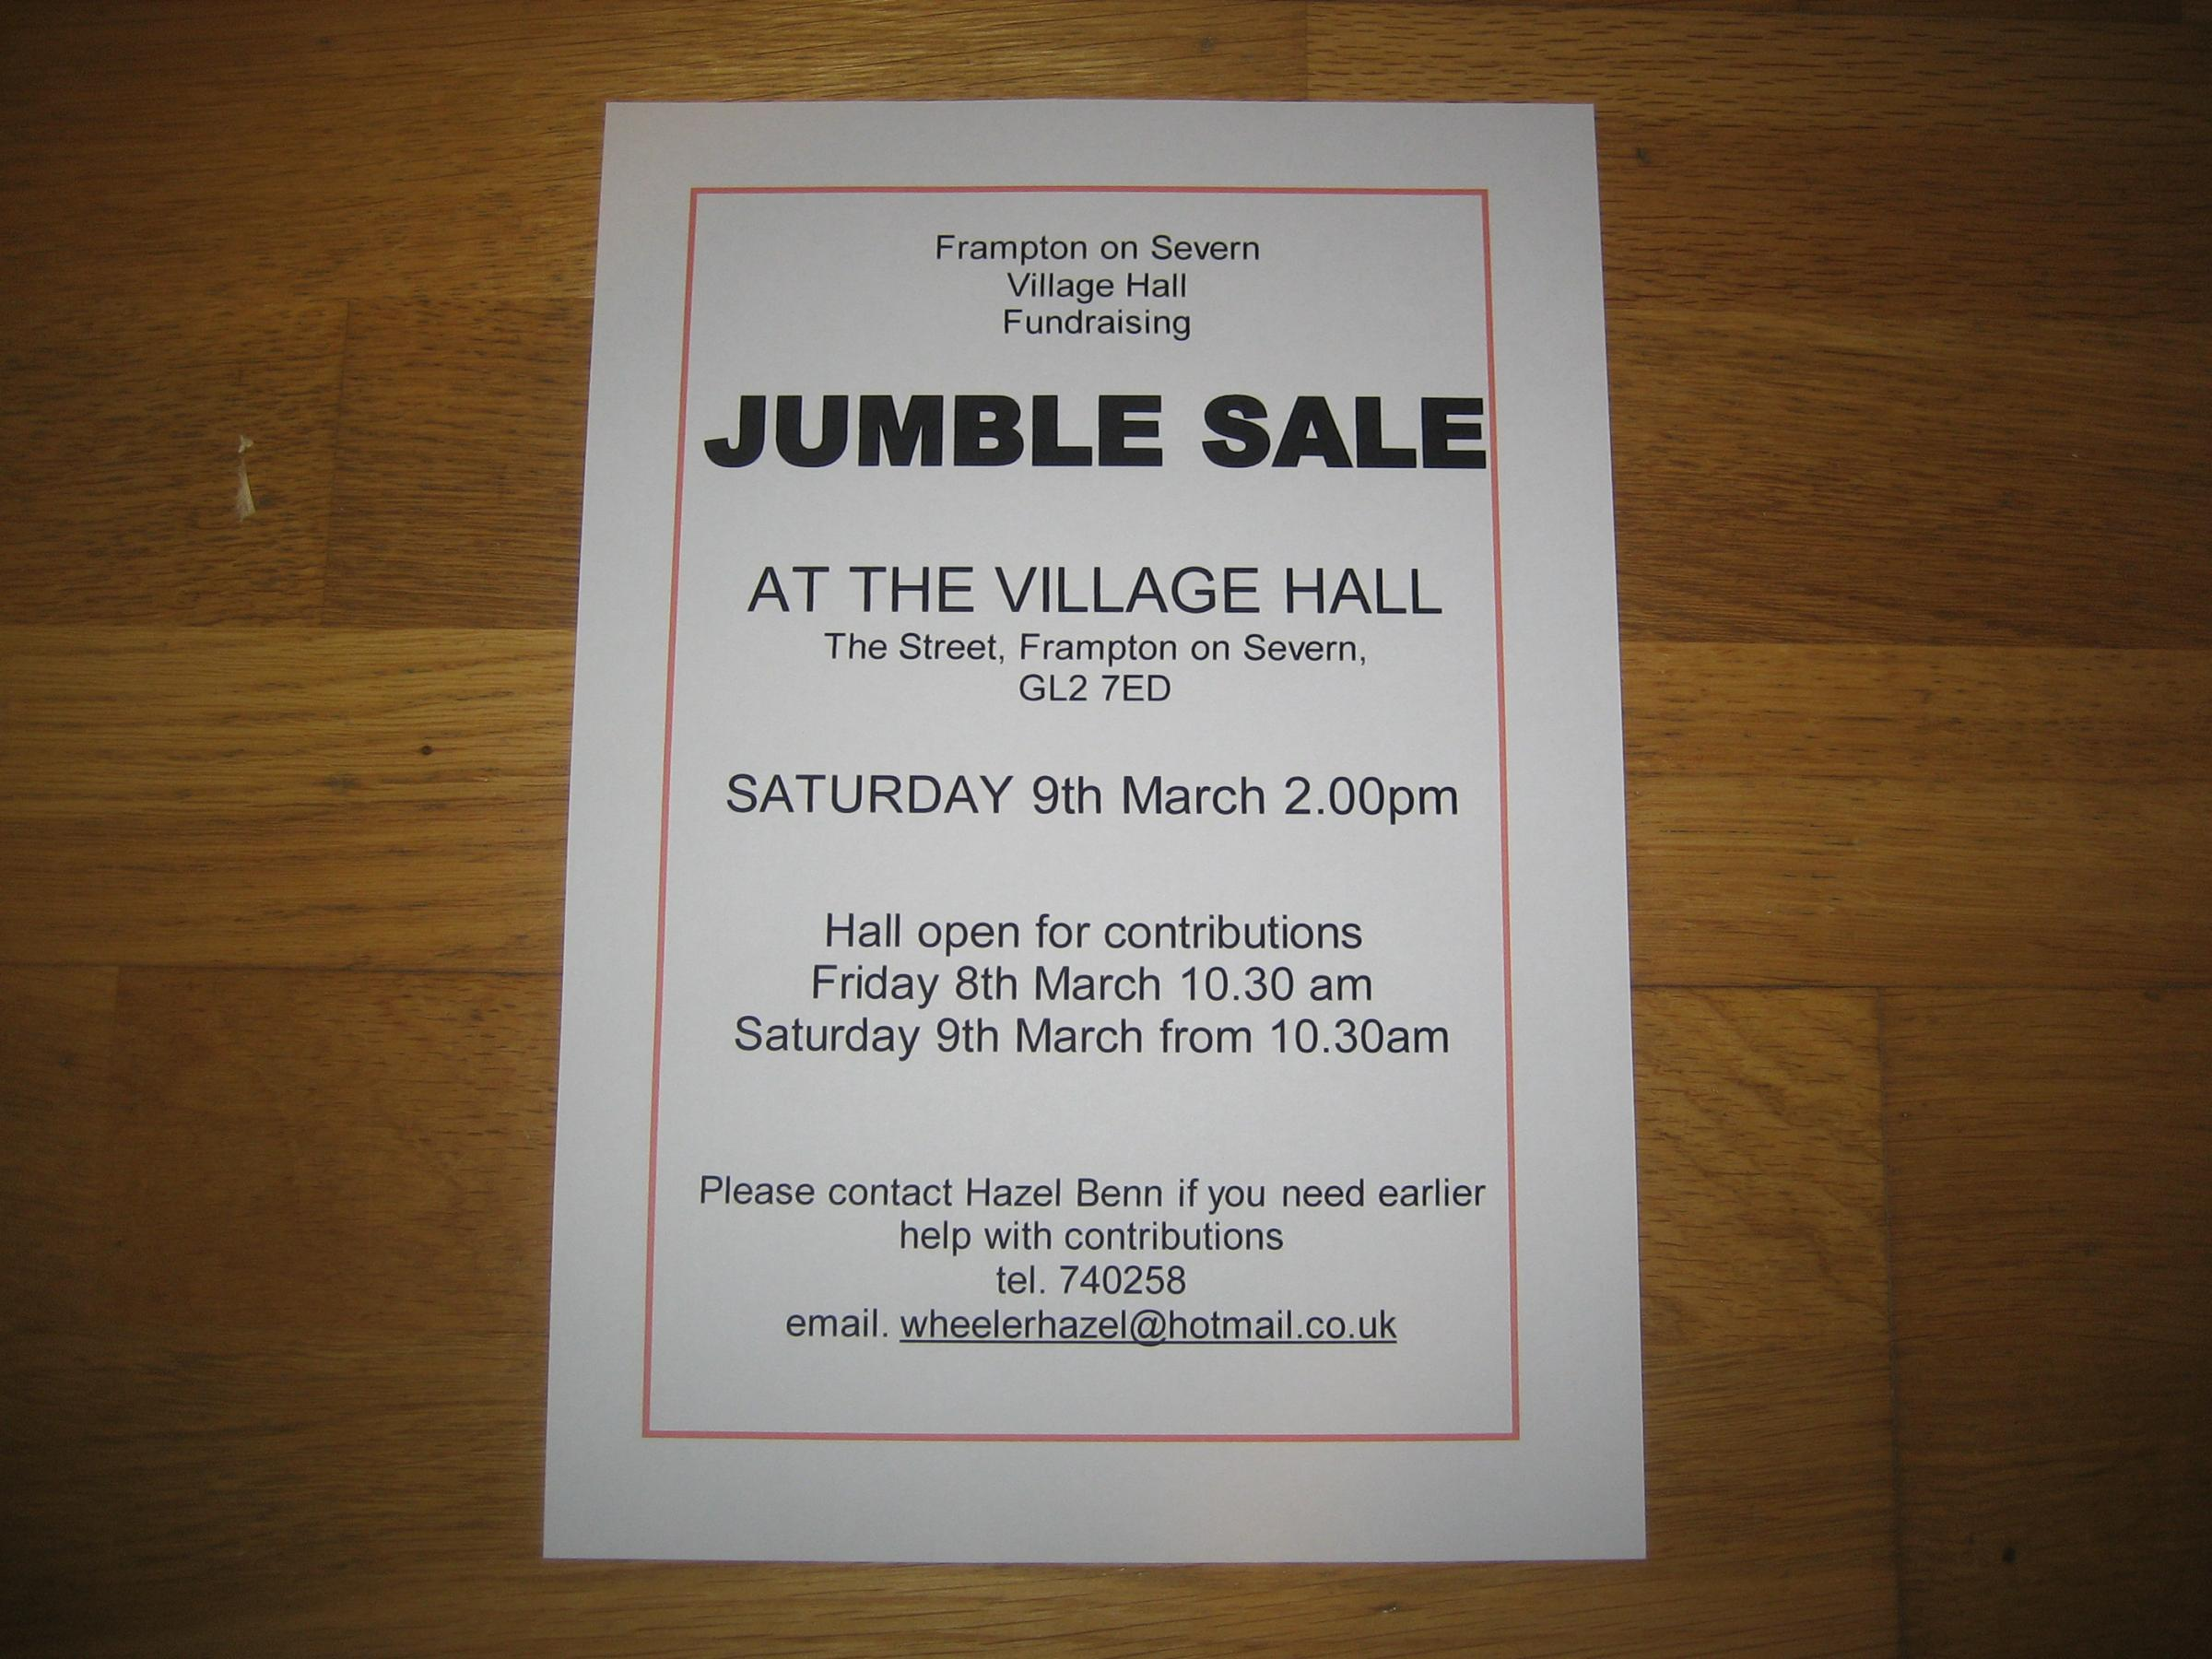 Frampton on Severn jumble sale March 9th 2019